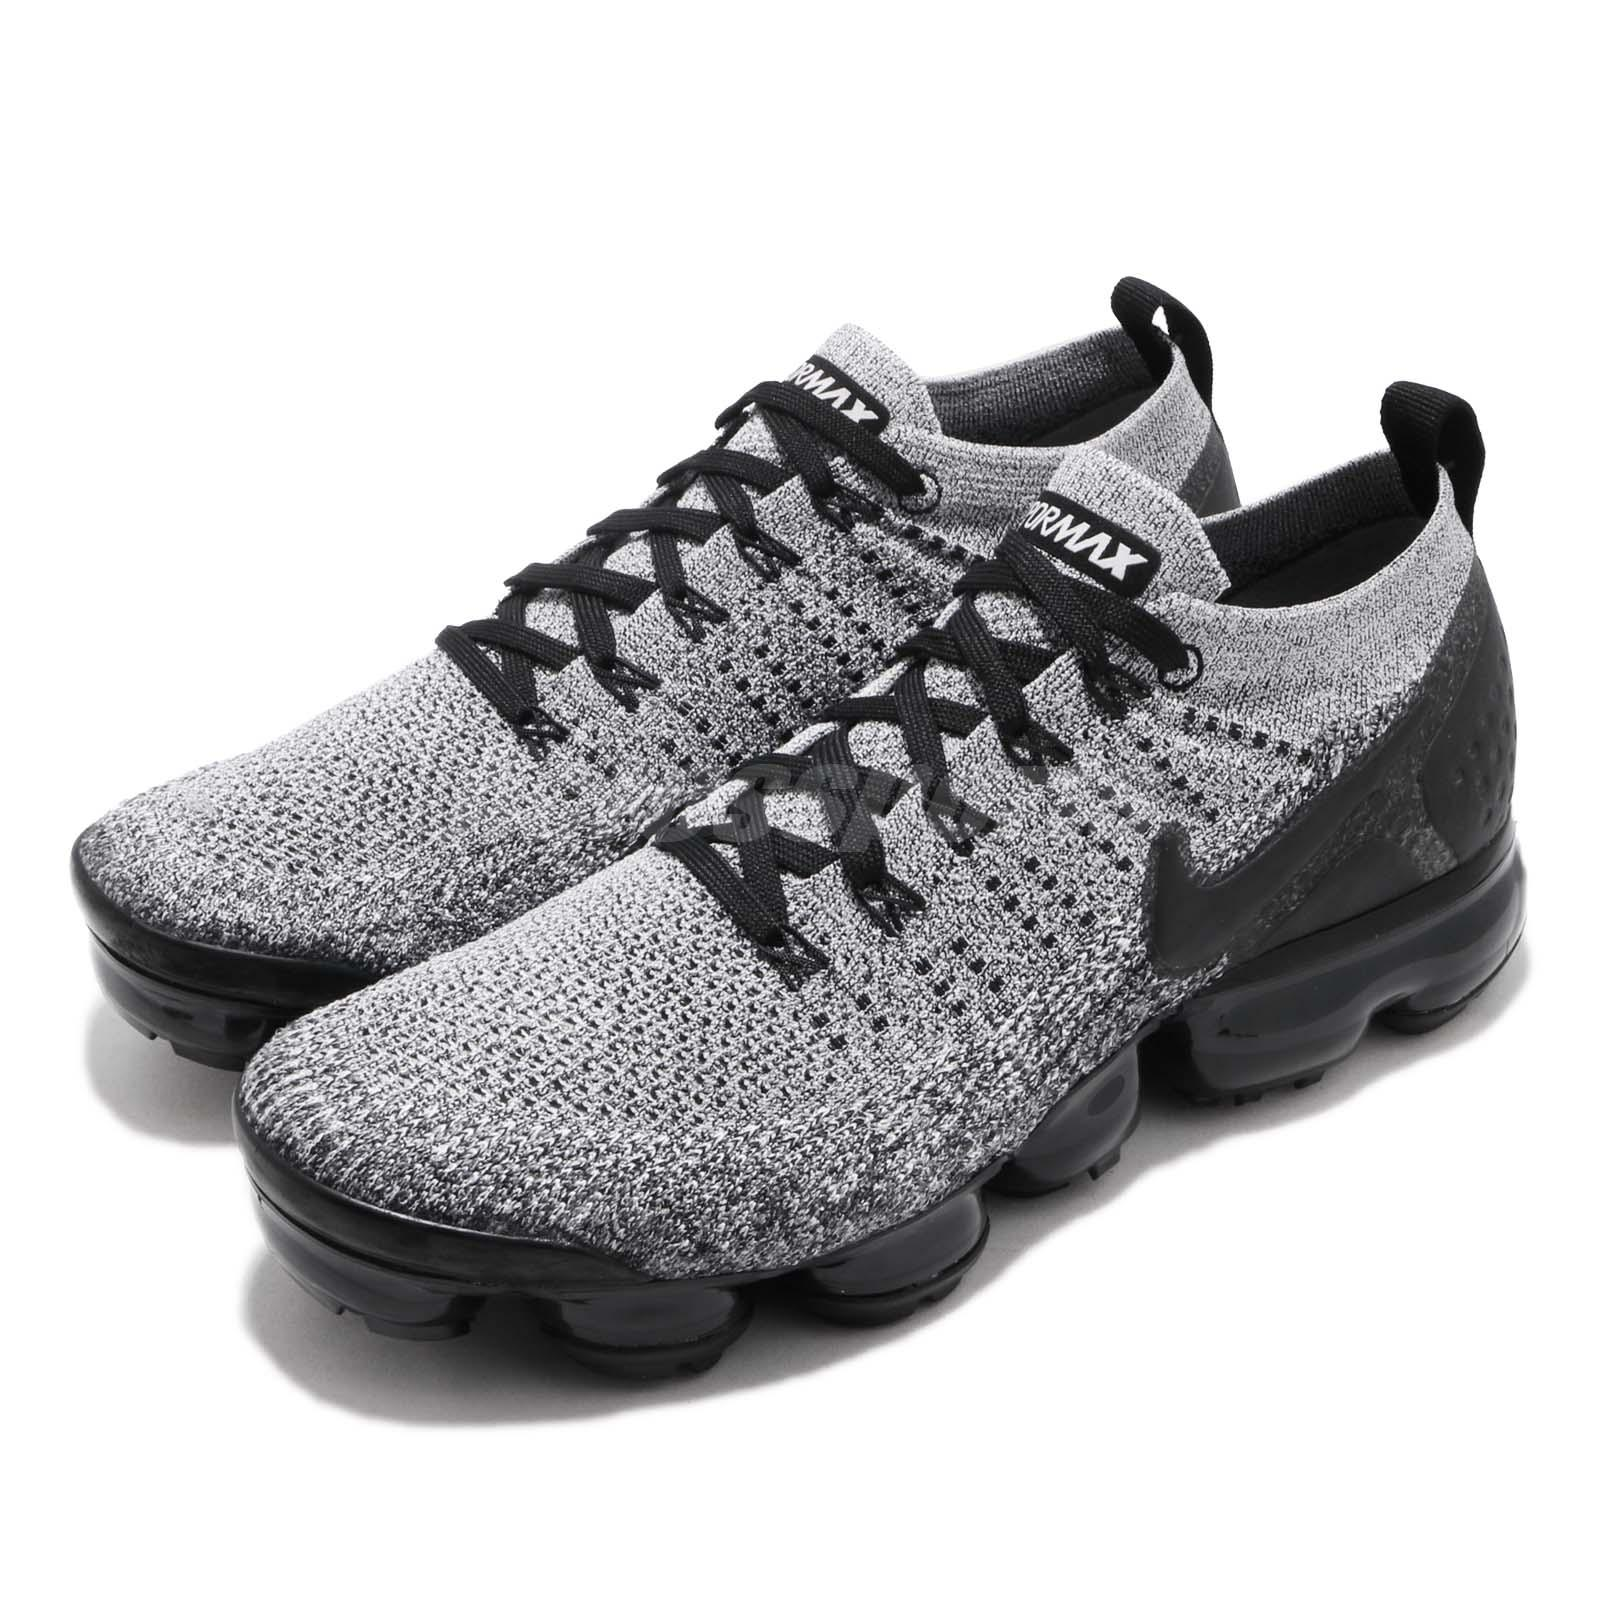 quality design 9550a e9ef7 Details about Nike Air Vapormax Flyknit 2 White Black Men Running Shoes  Sneakers 942842-107